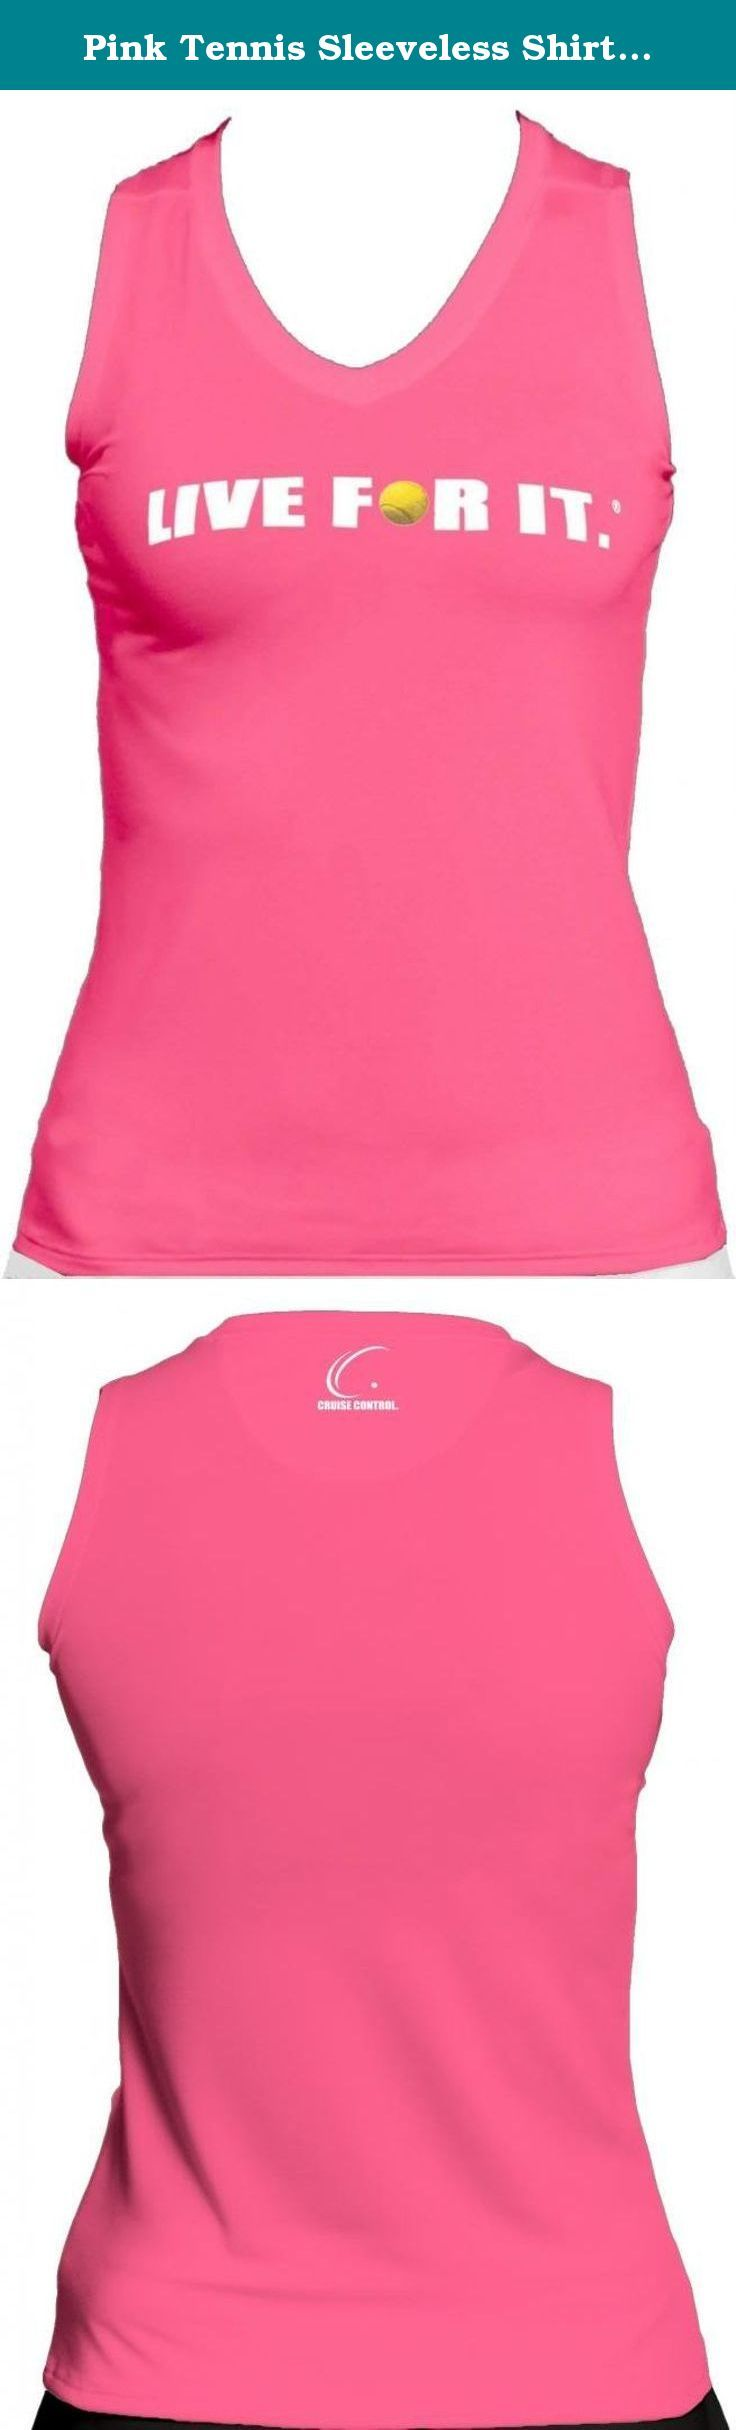 Pink Tennis Sleeveless Shirt Live For It Athletic Performance, Cruise Control, Size X-LARGE. Cruise Control's comfortable LIVE FOR IT.® tennis performance tee is designed with a contoured fit to compliment your every curve. This soft antibacterial and moisture management fitted tee is made with moisture wicking technology that absorbs the moisture and perspiration from the skin and transports it quickly through the fabric for fast evaporation. The material's antibacterial characteristics…